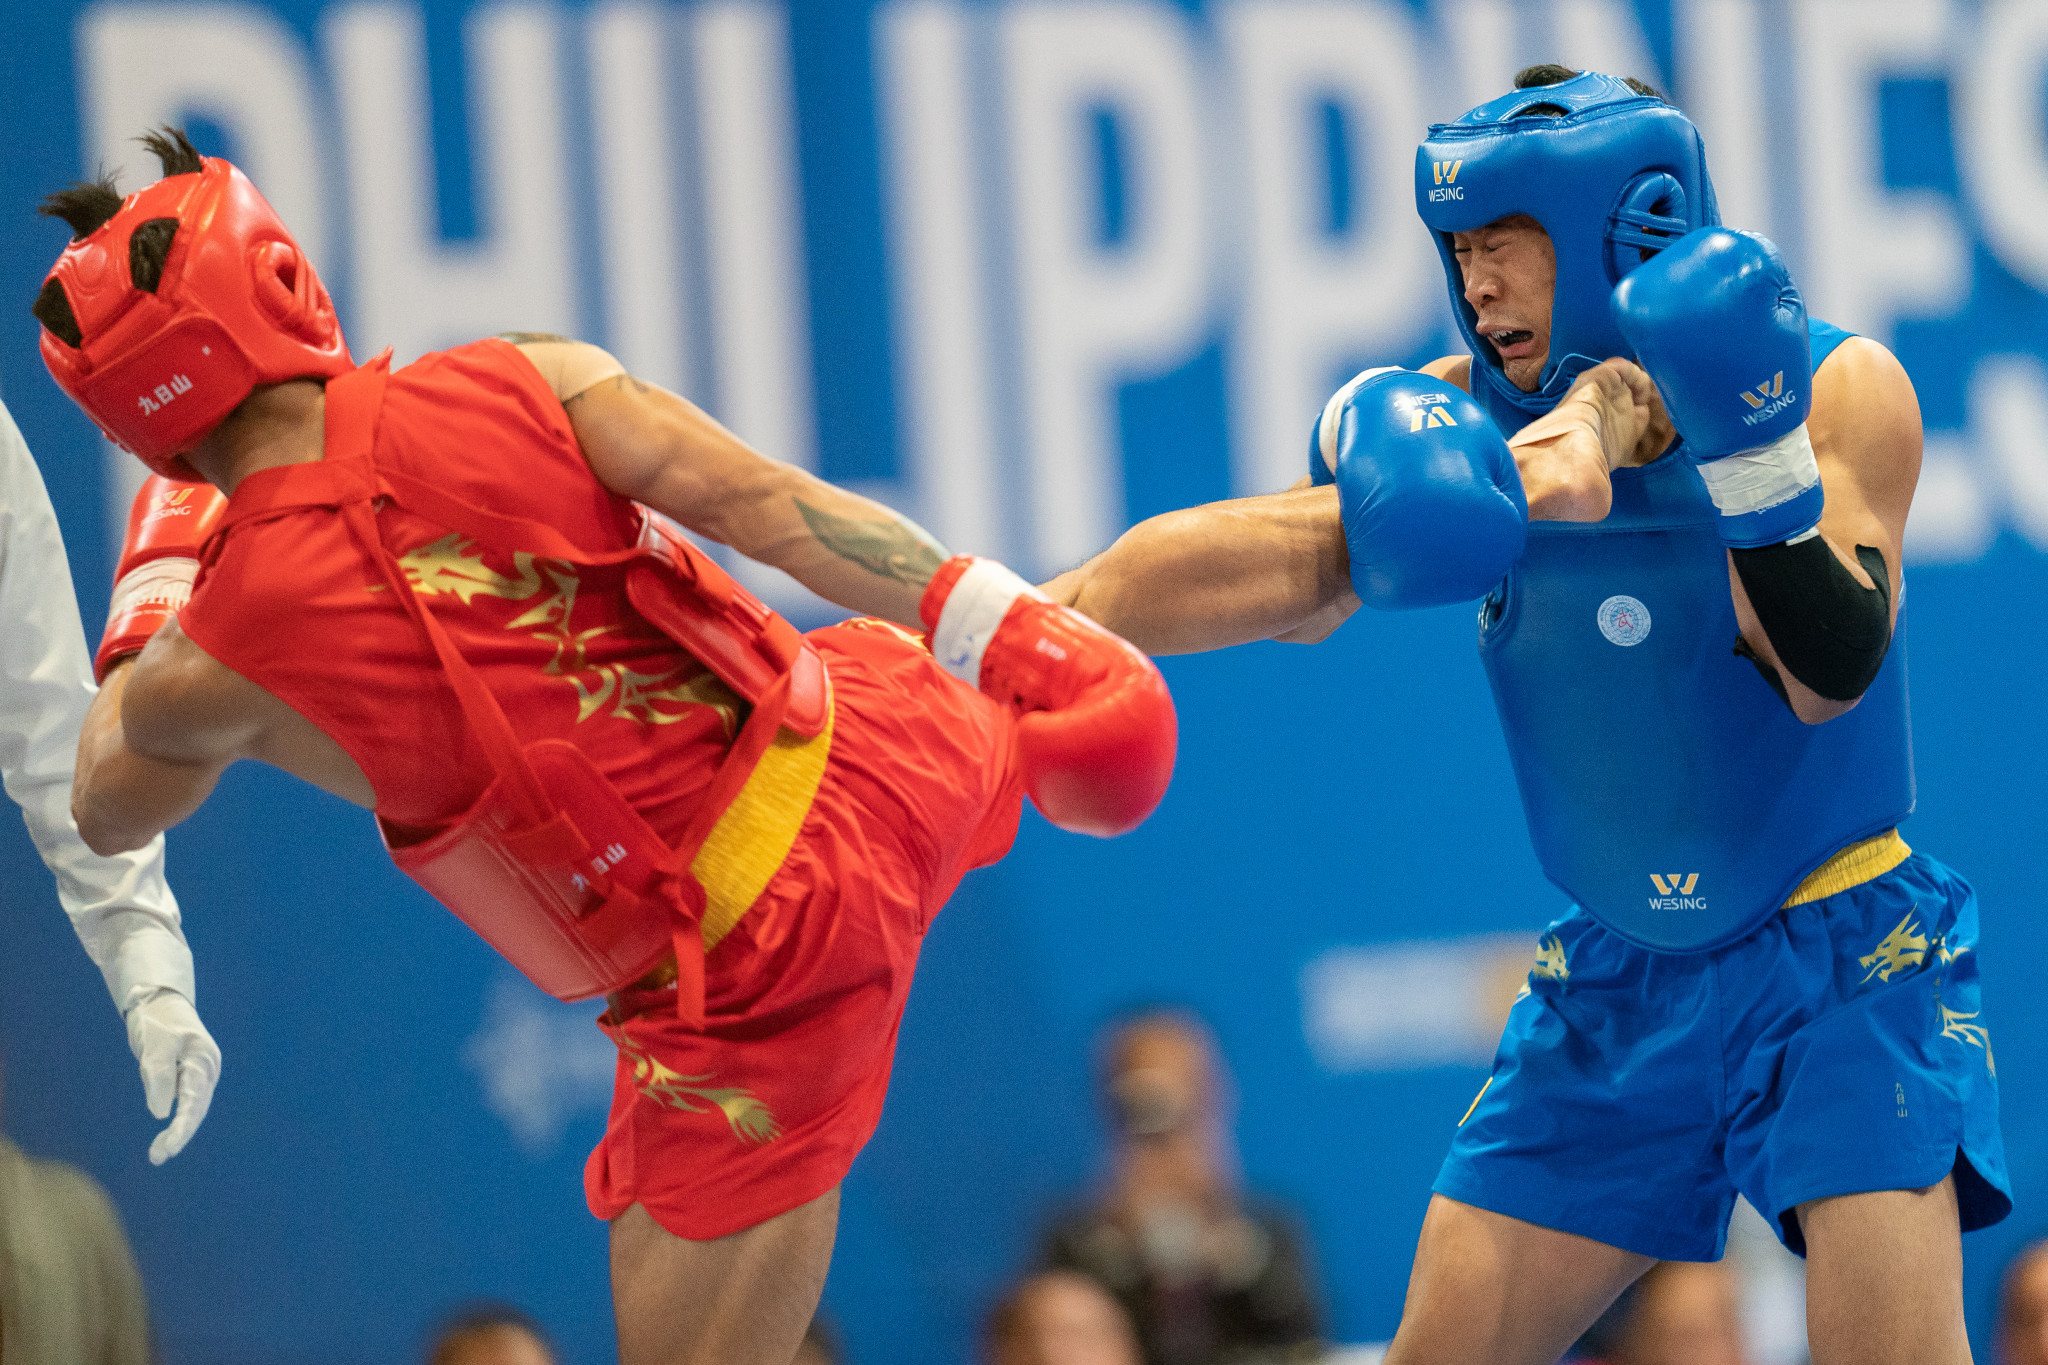 Wushu's addition to the sport programme was also approved by the IOC Executive Board ©Getty Images